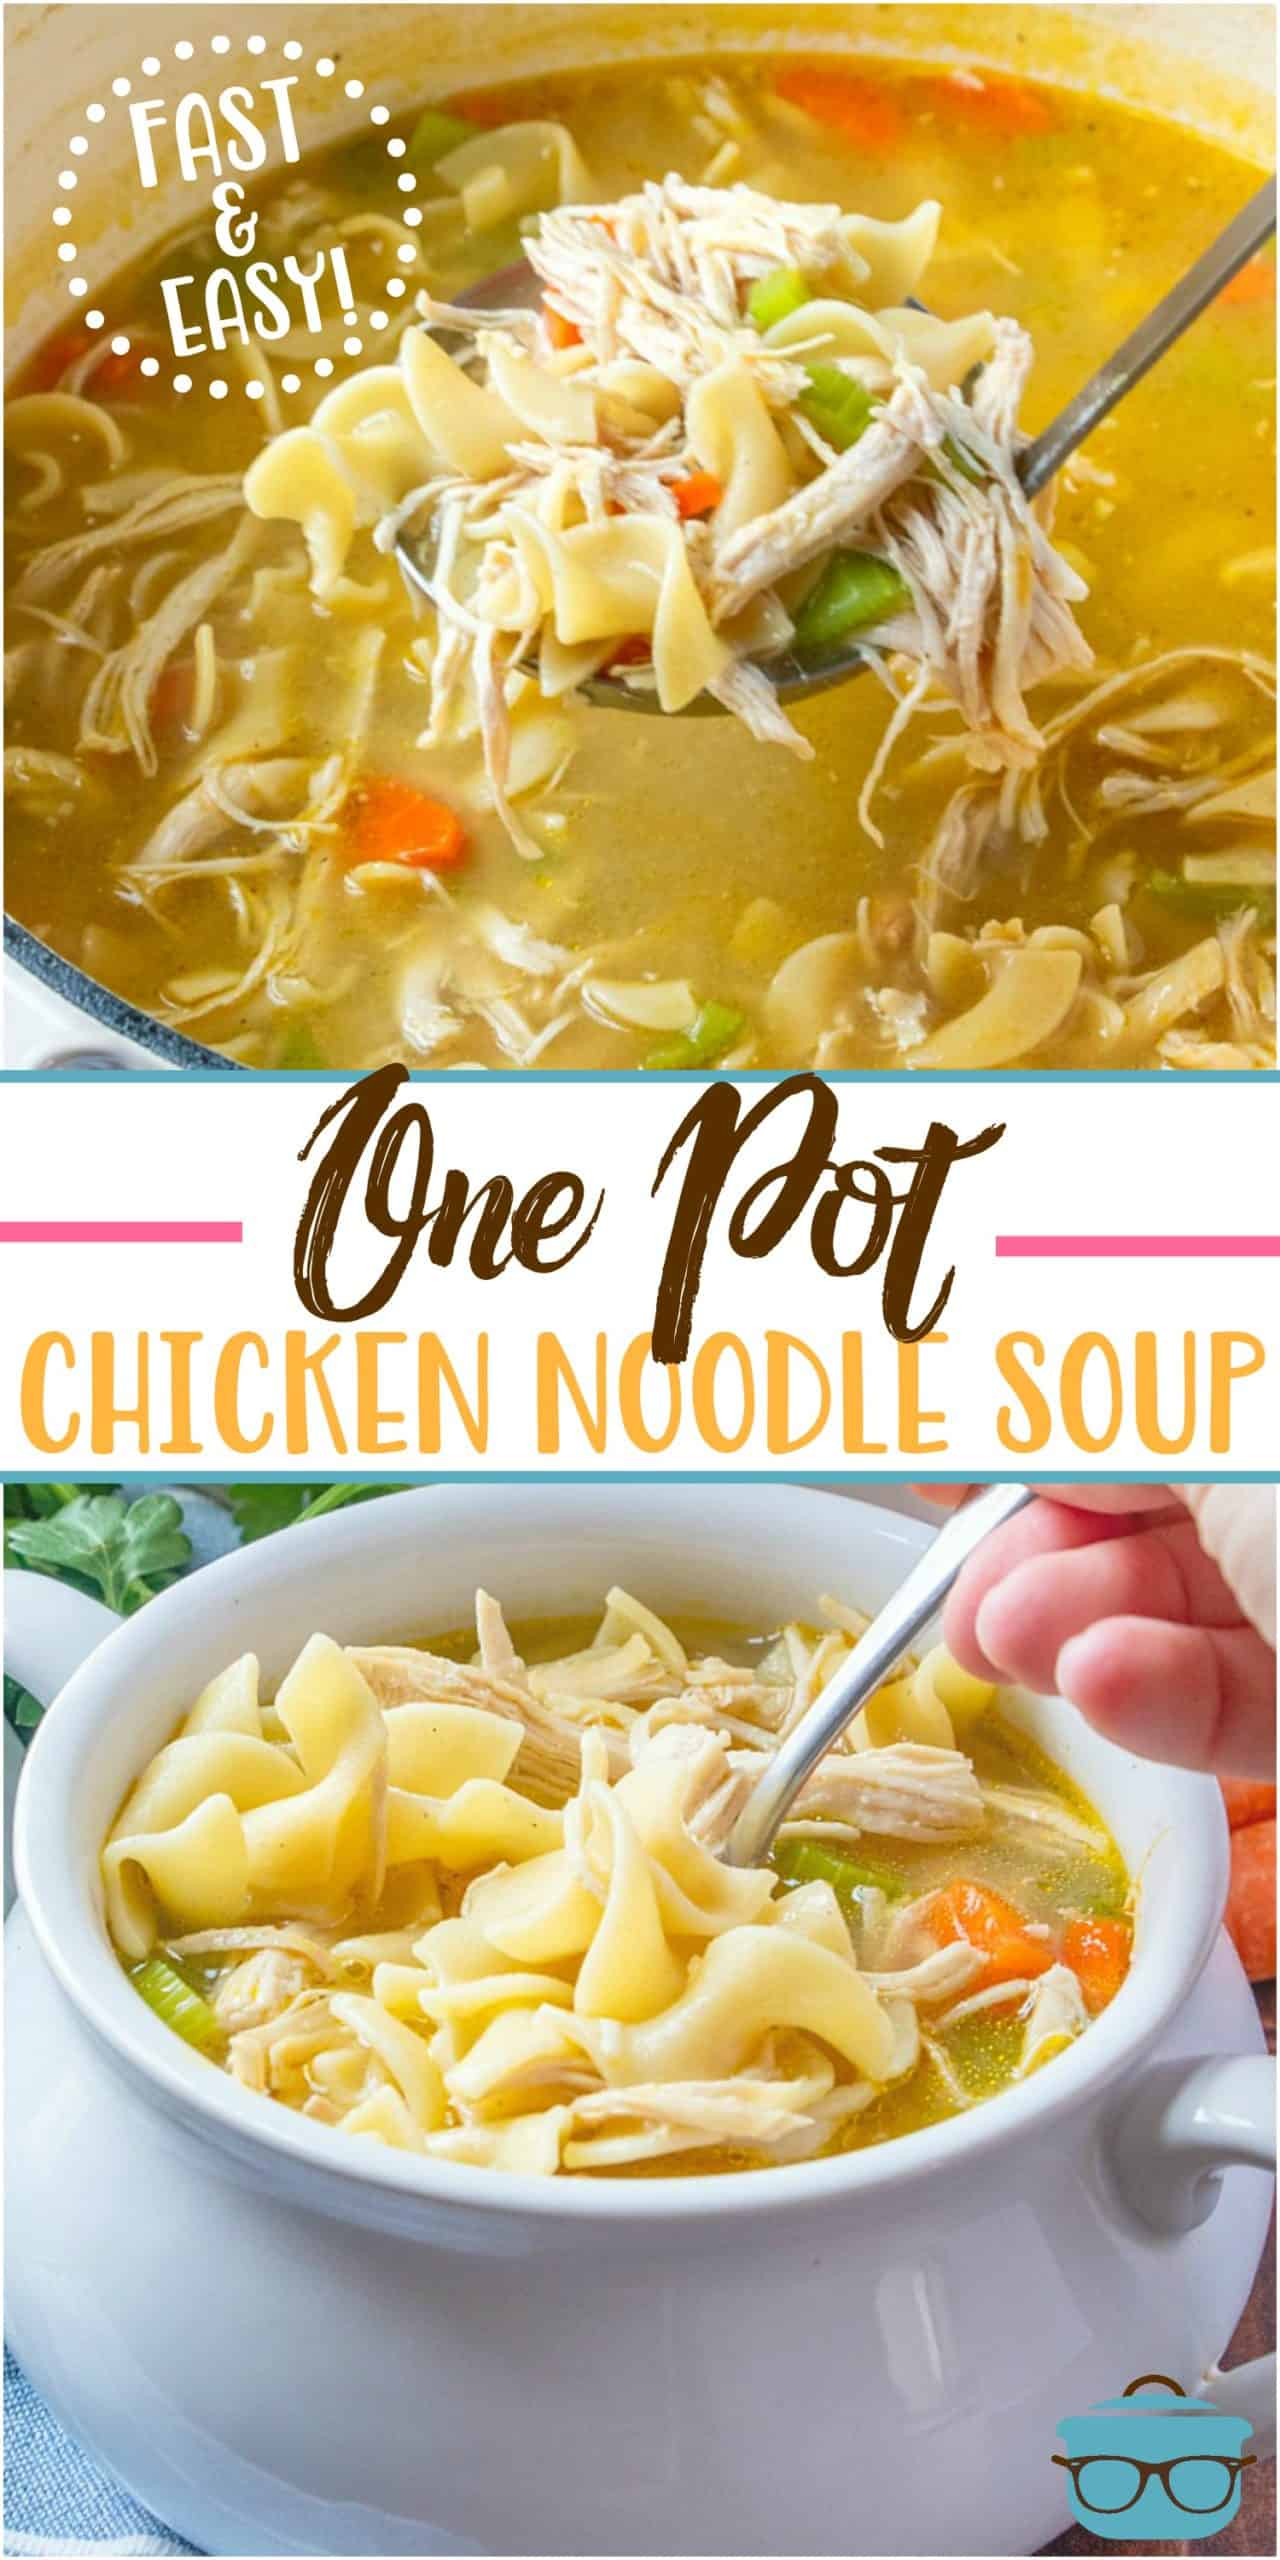 This is the best shortcut One Pot Chicken Noodle Soup recipe! It has all the homemade flavor you love but it is quick and easy to prepare.